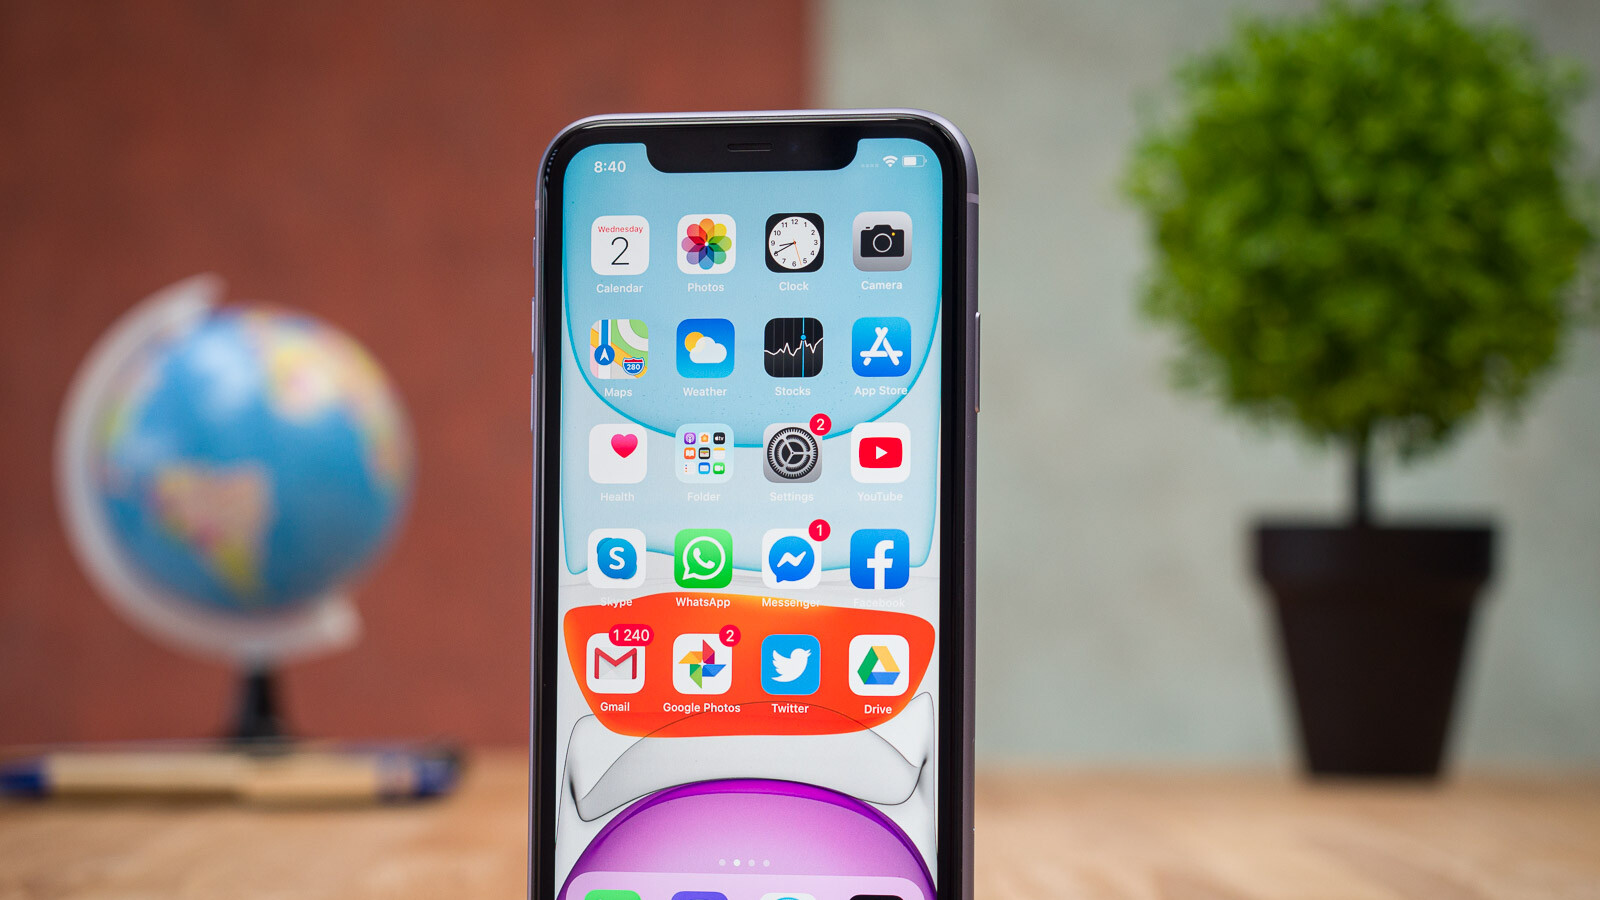 Apple experiences soaring iPhone sales in China as Android loses ground